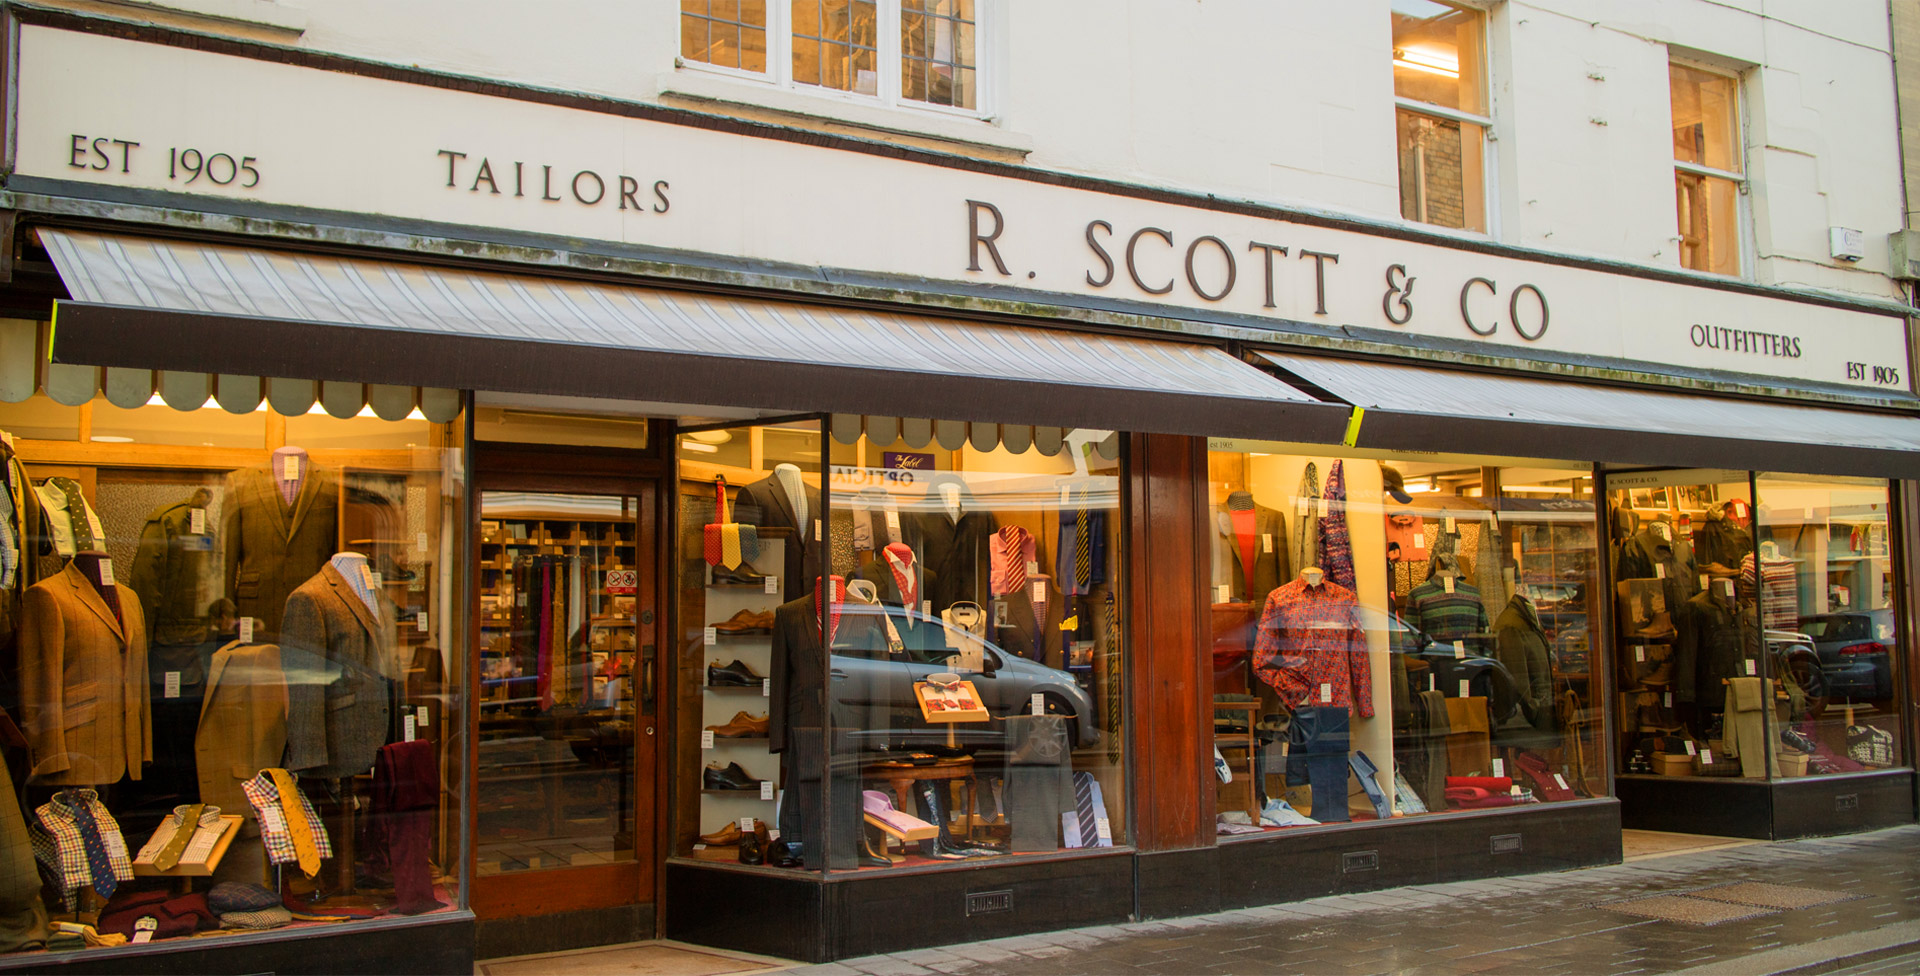 R. Scott & Co of Cirencester